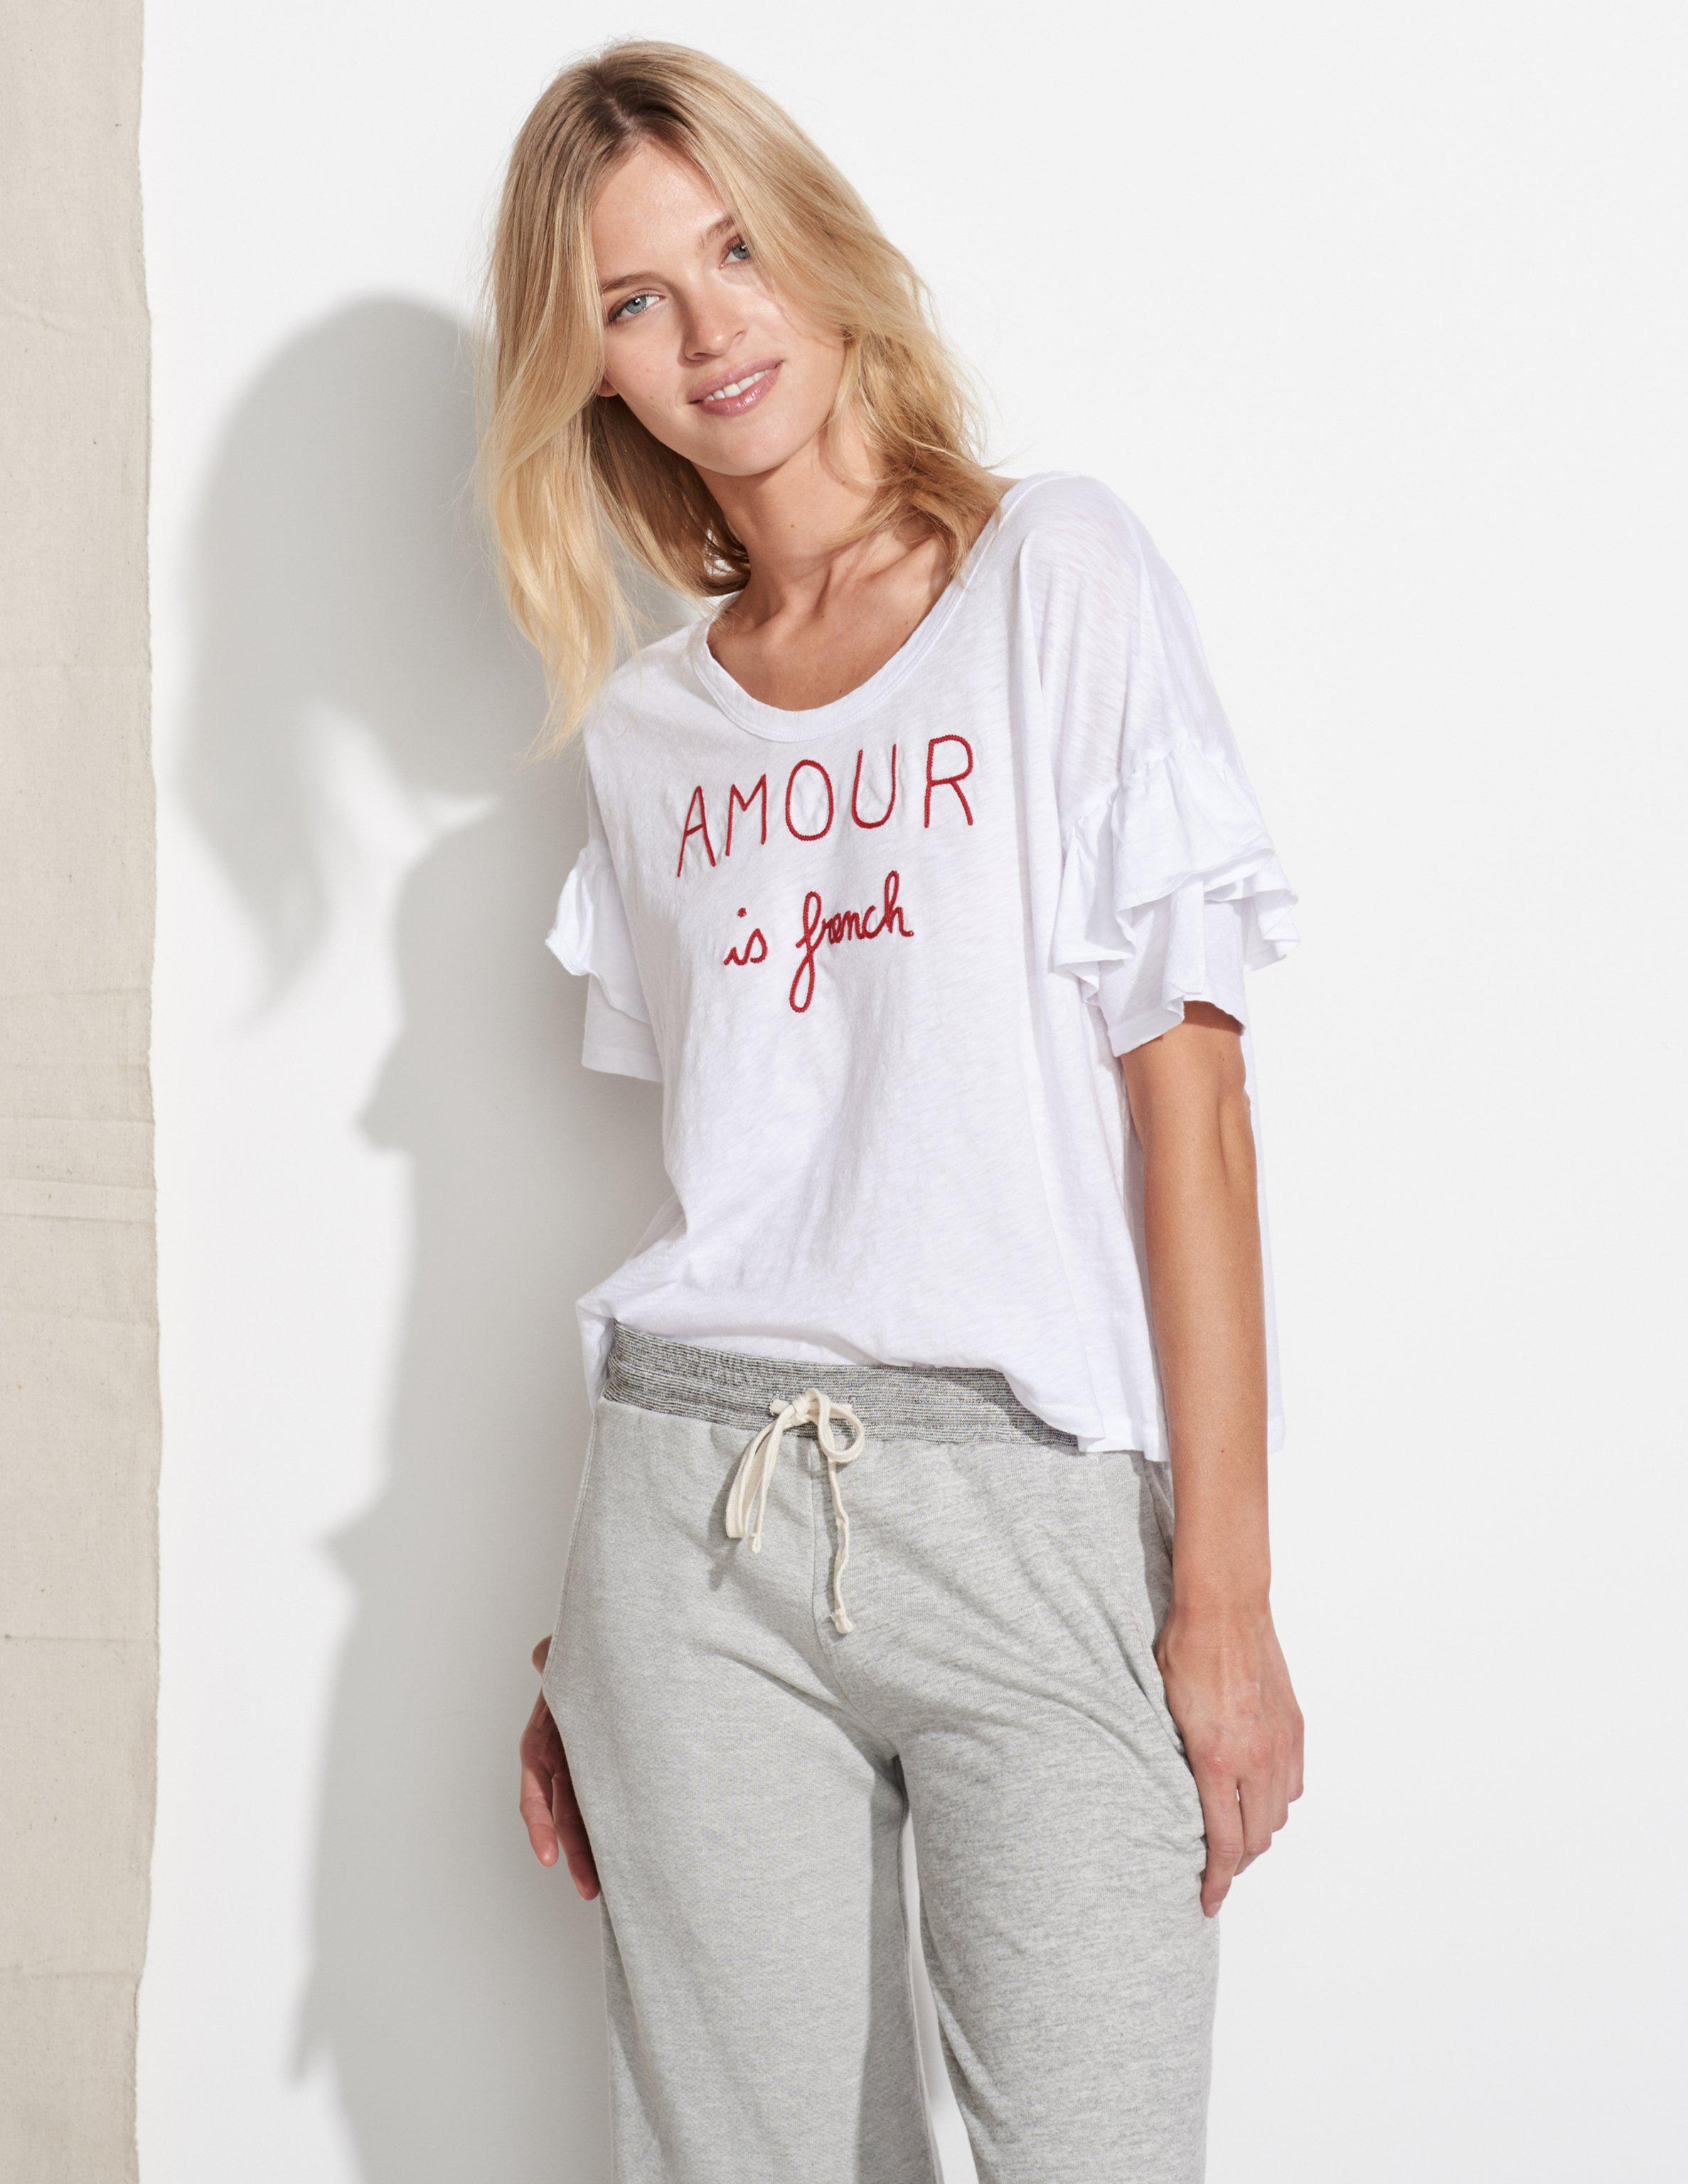 c29f198e433 Lyst - Sundry Amour Is French Ruffle Sleeve Tee in White